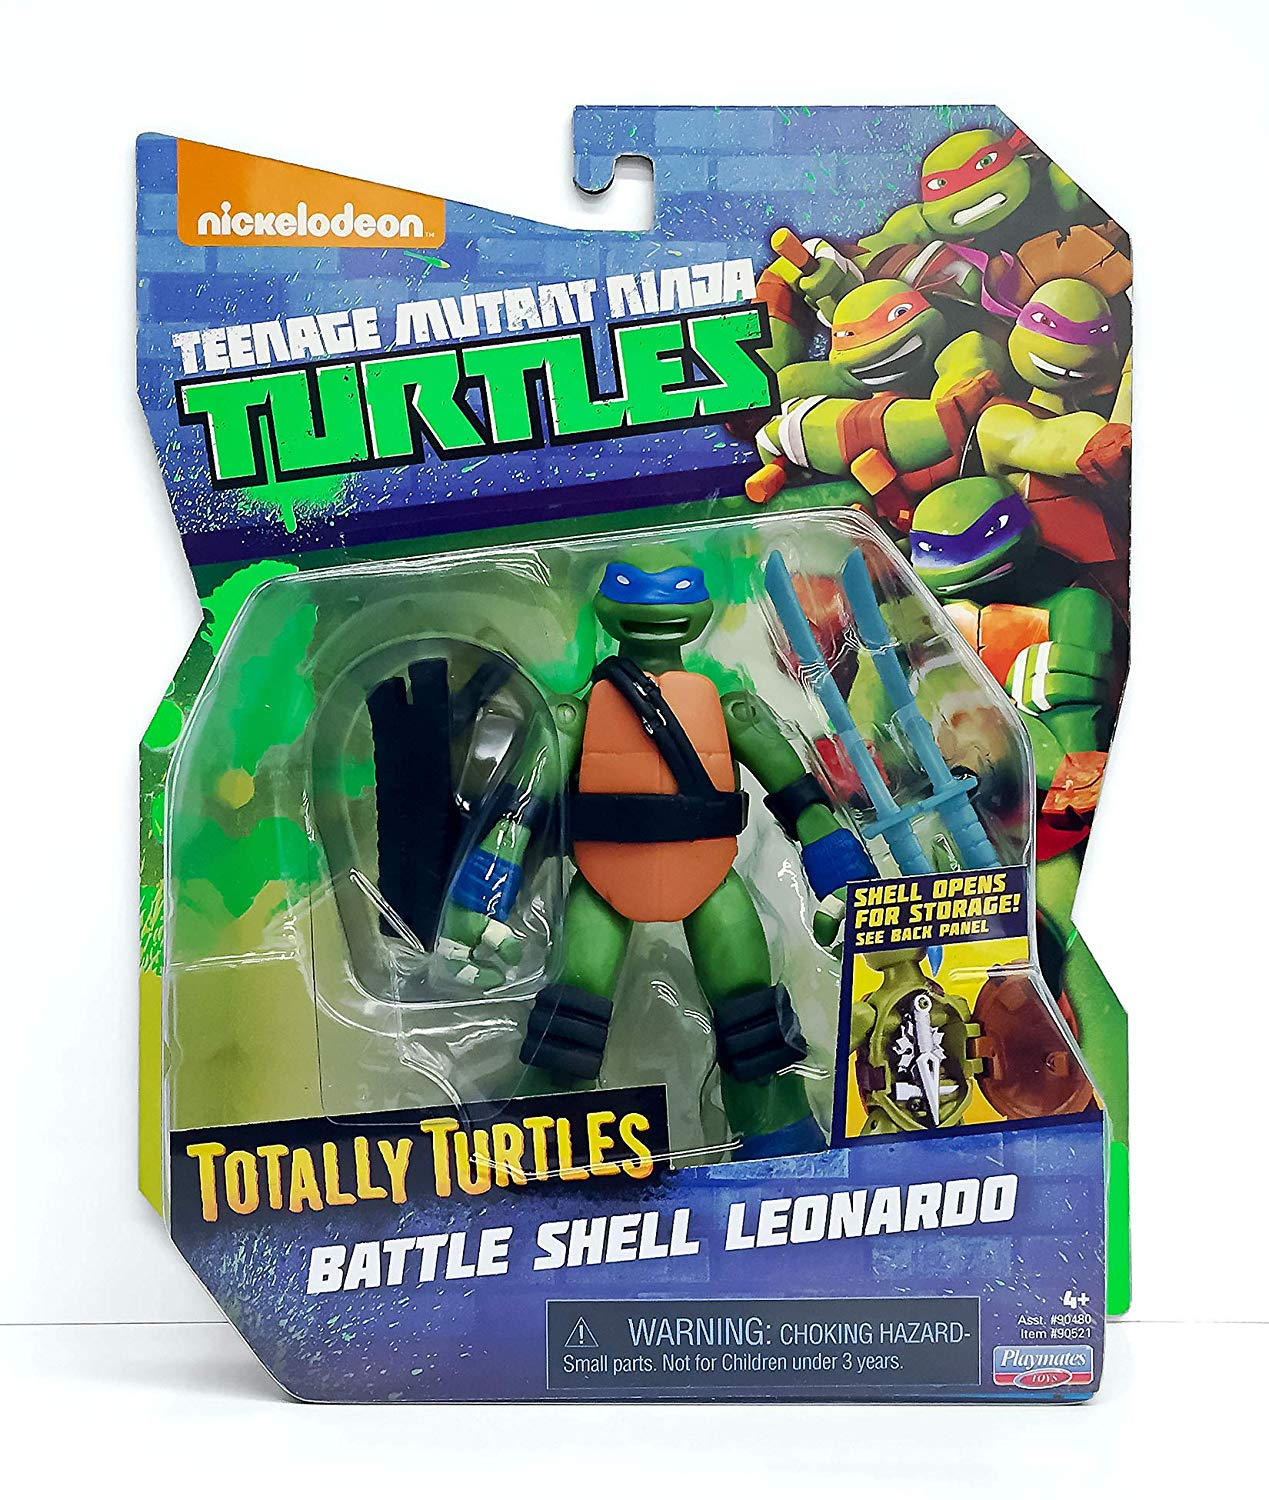 Nickelodeon Teenage Mutant Ninja Turtles Toys Ninja Turtle